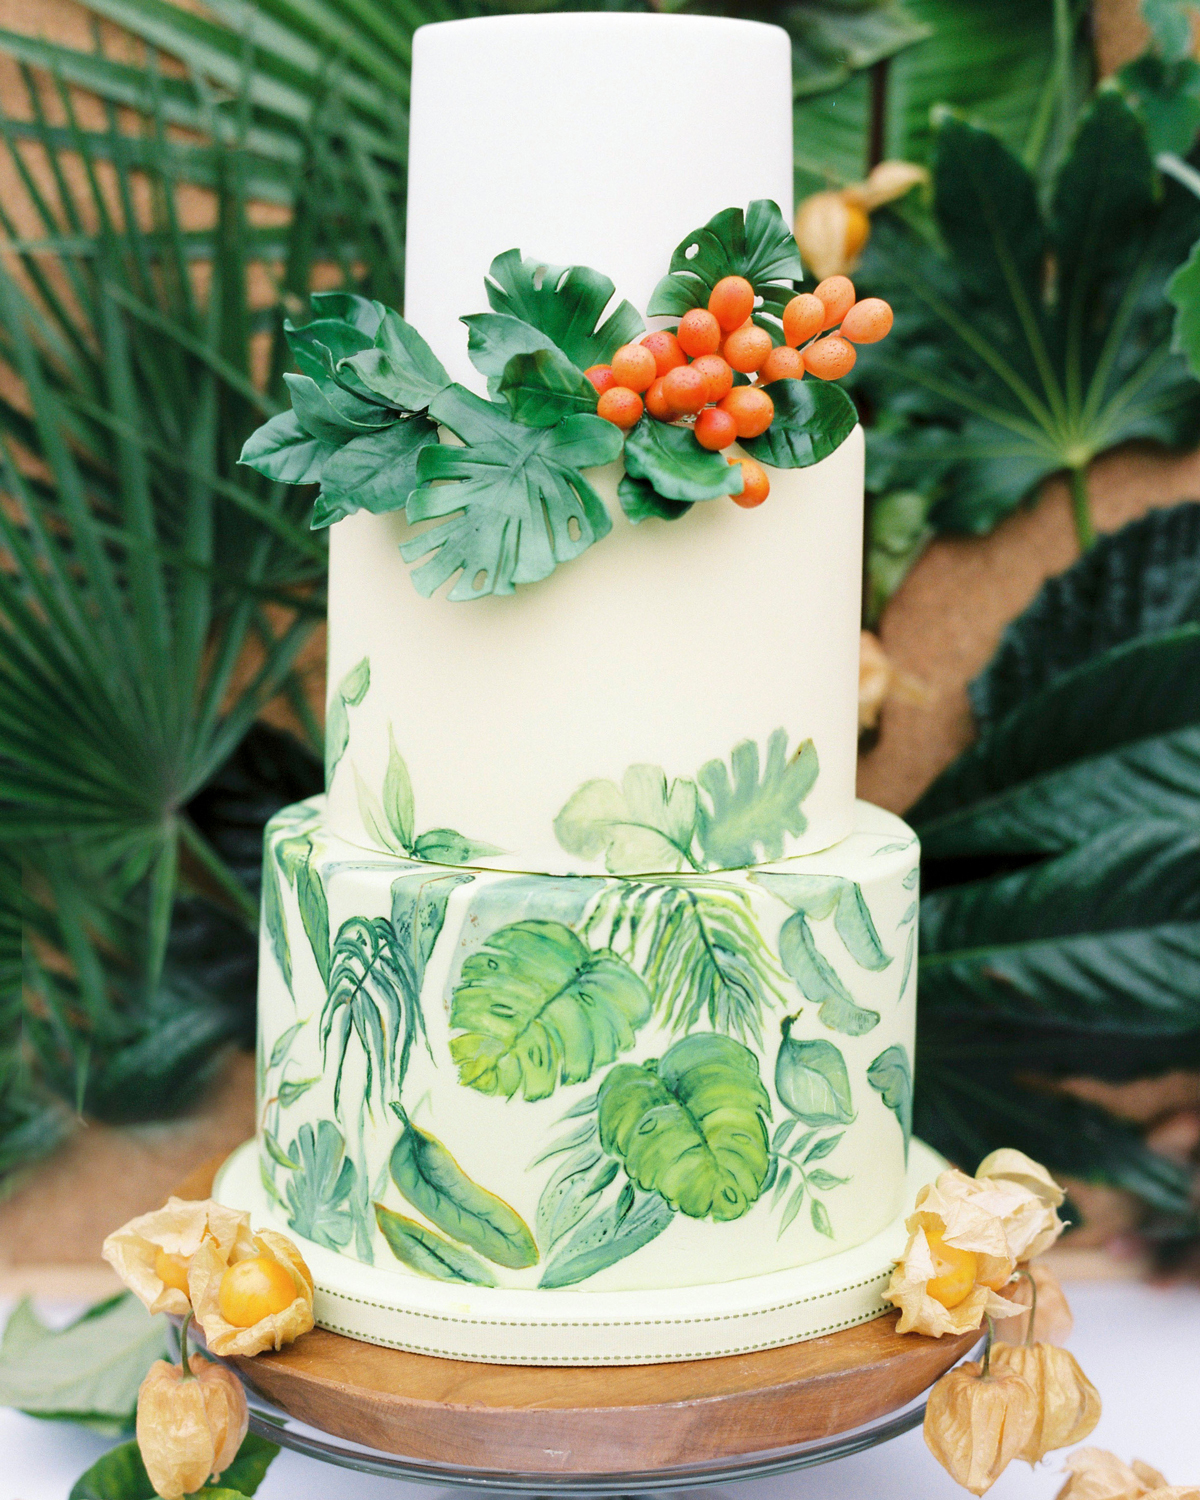 tropical foliage frosting design and cake decor three tiered wedding cake